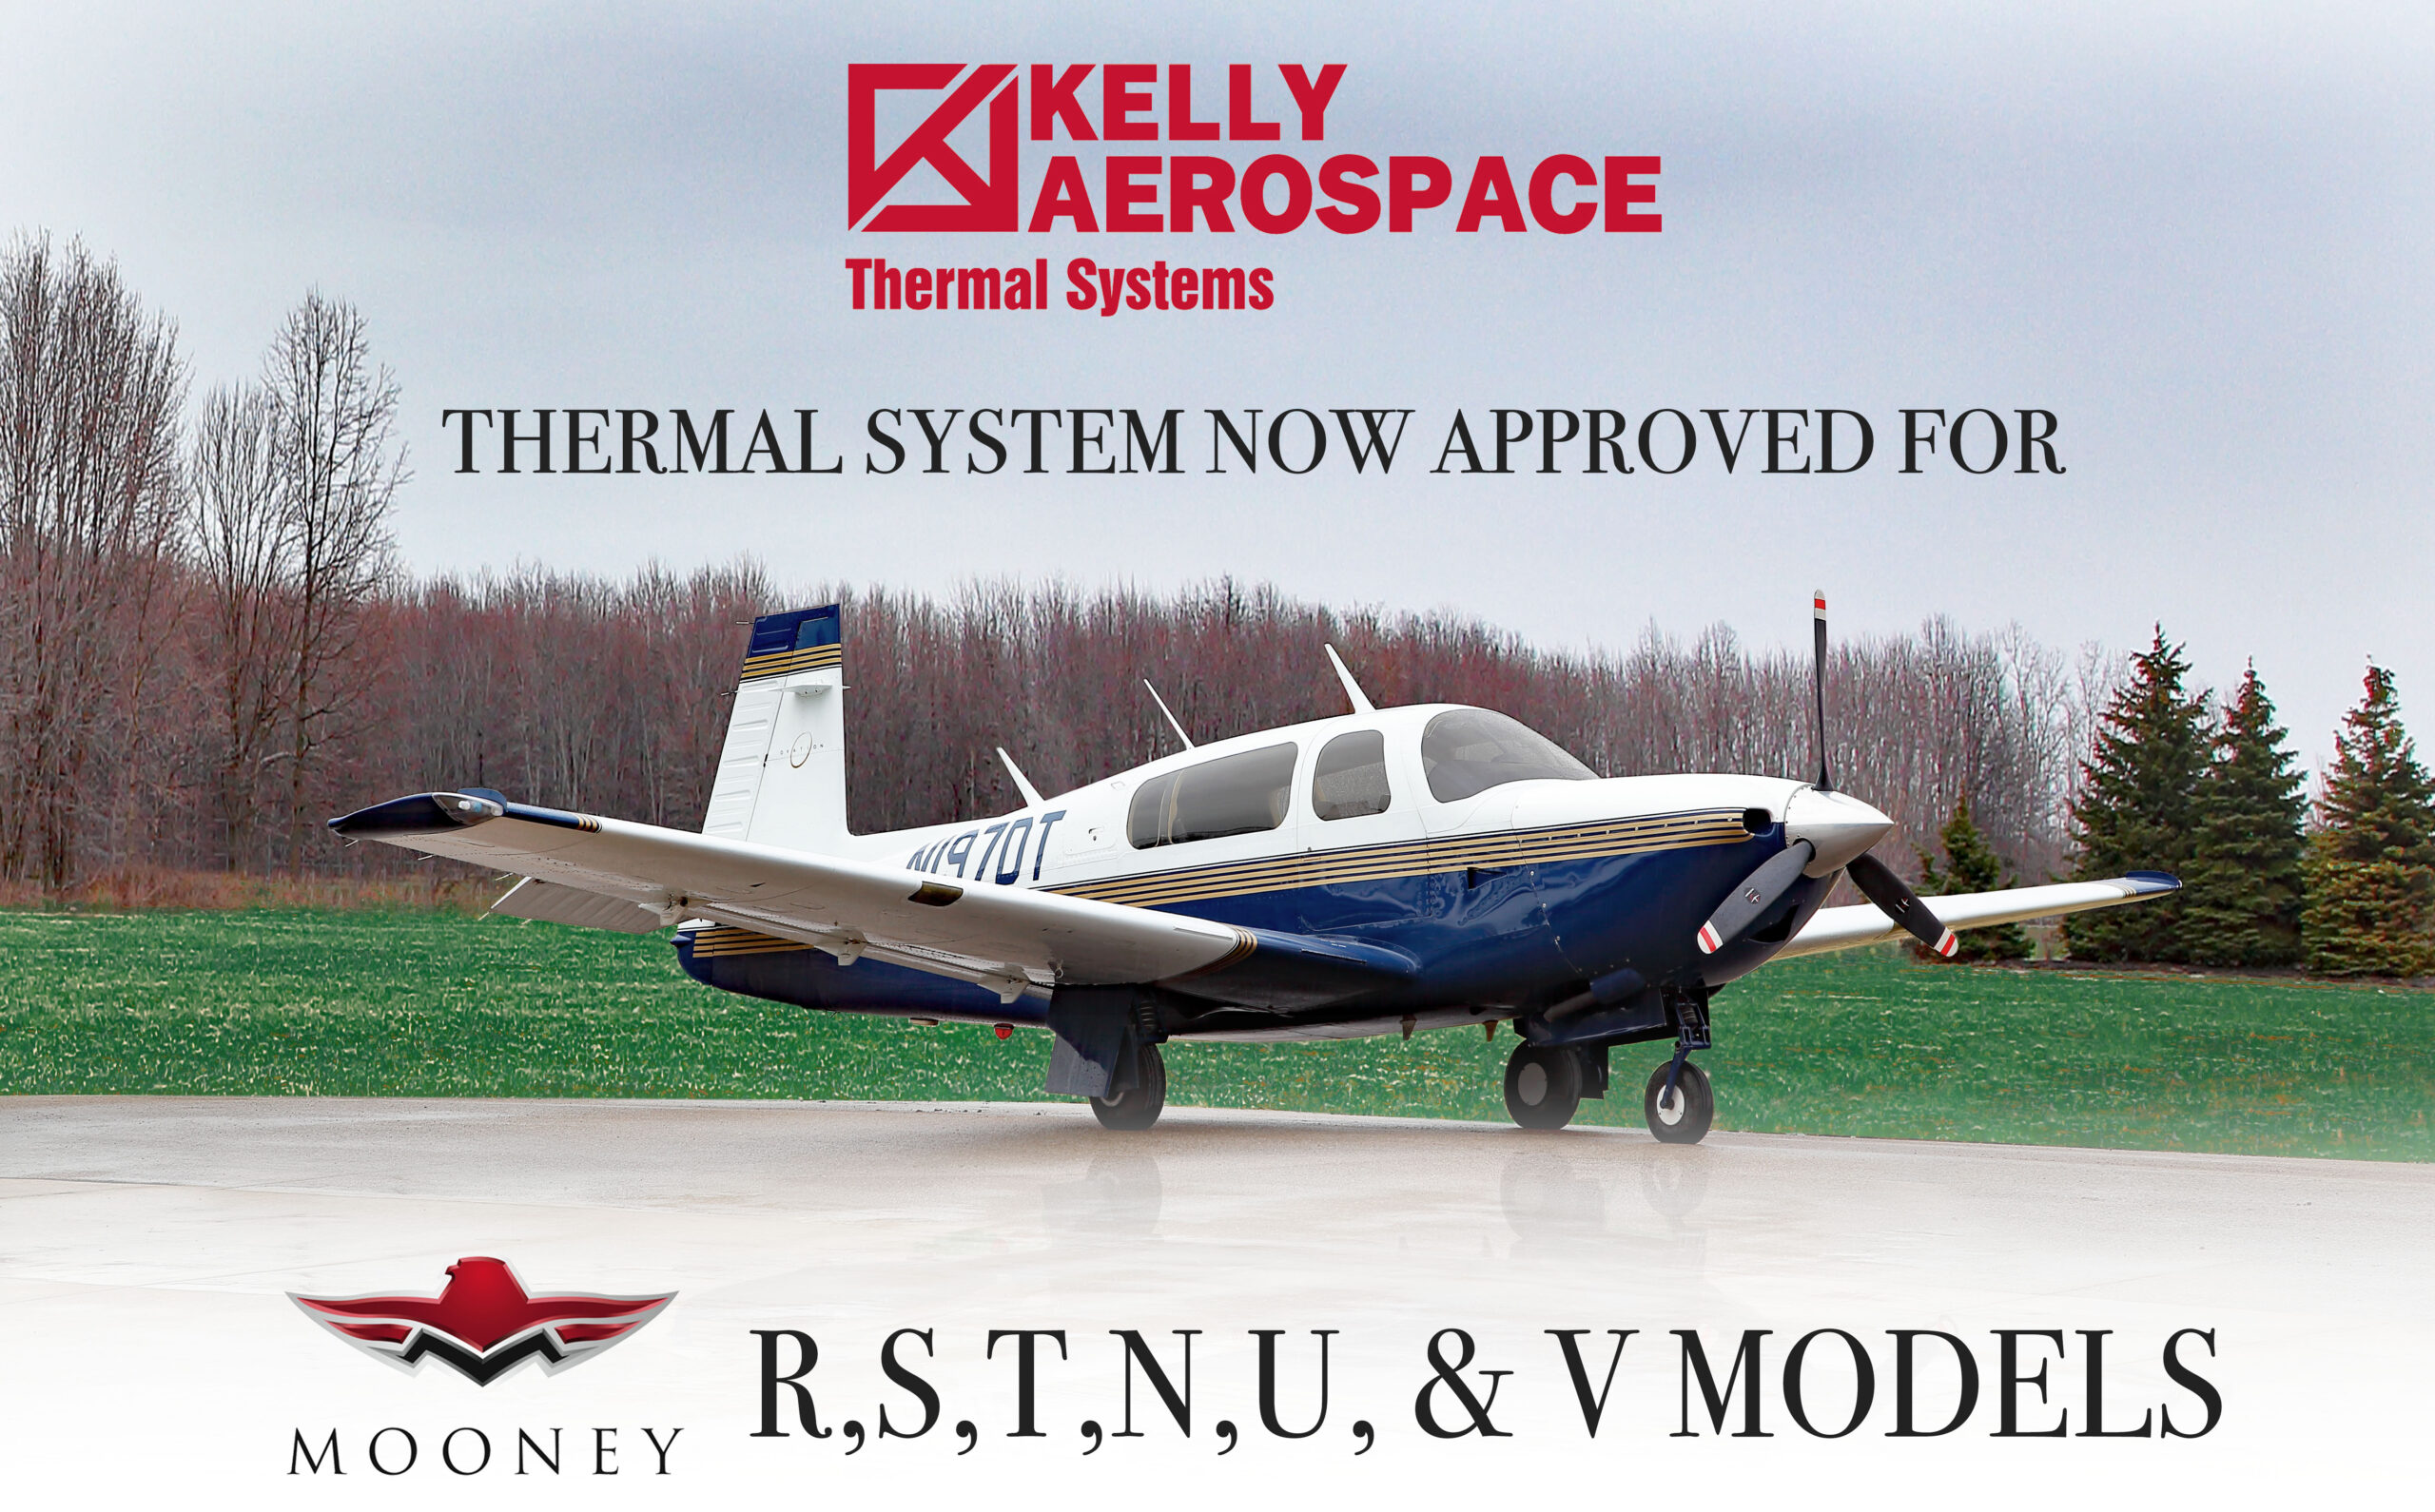 Mooney Aircraft Air Conditioning System Now Available